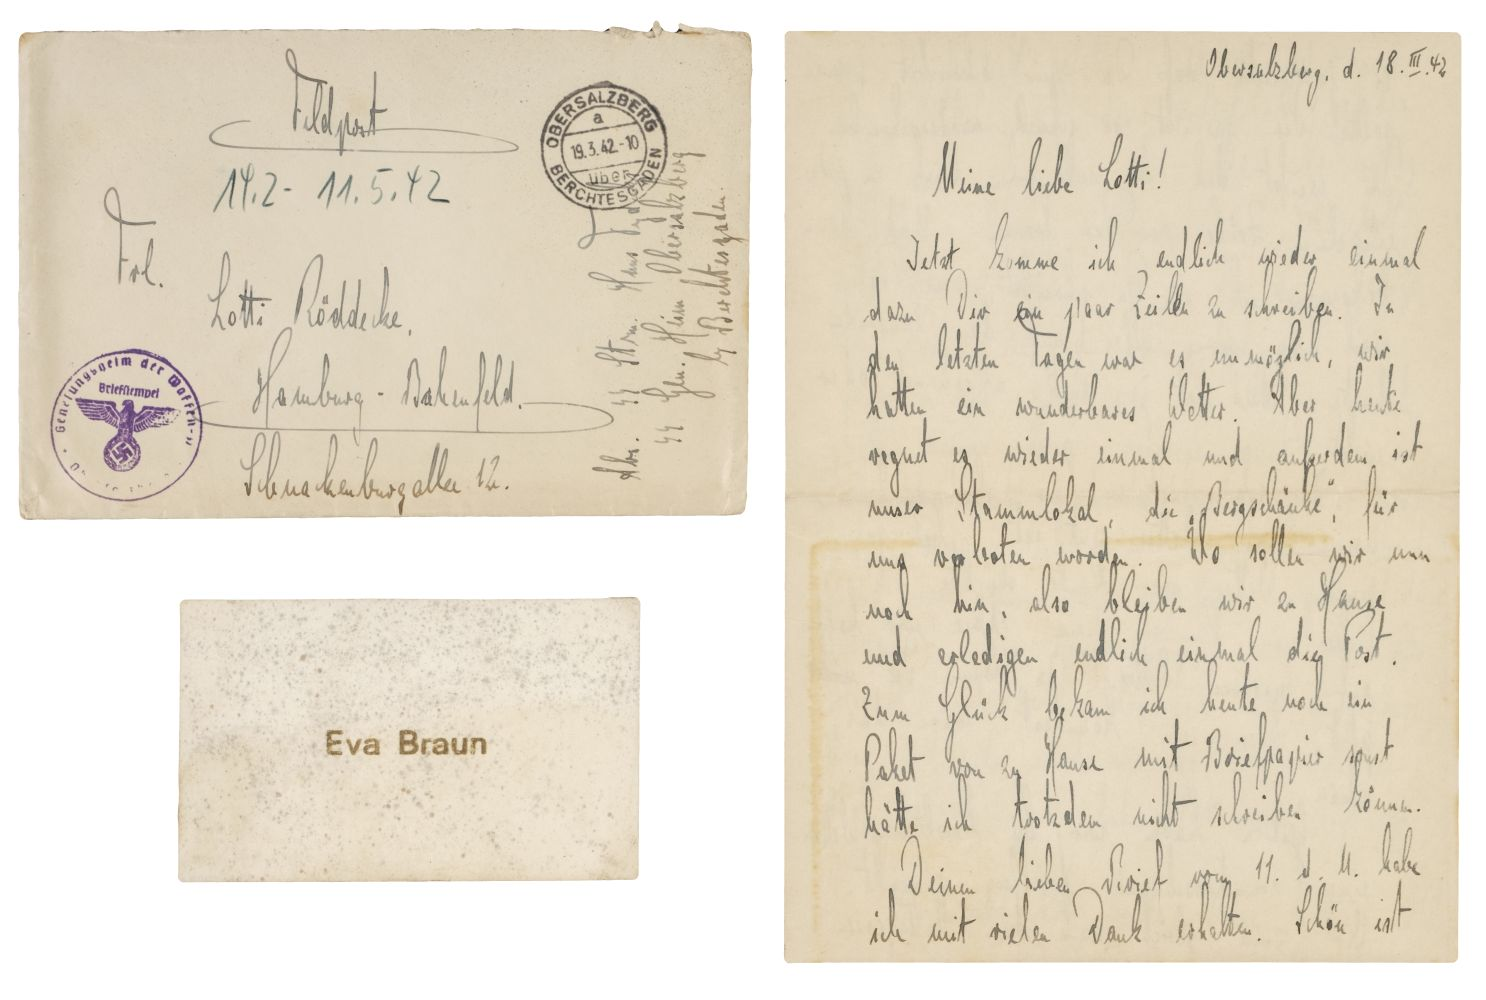 * Third Reigh. SS Guard's Letter - Dated 1942